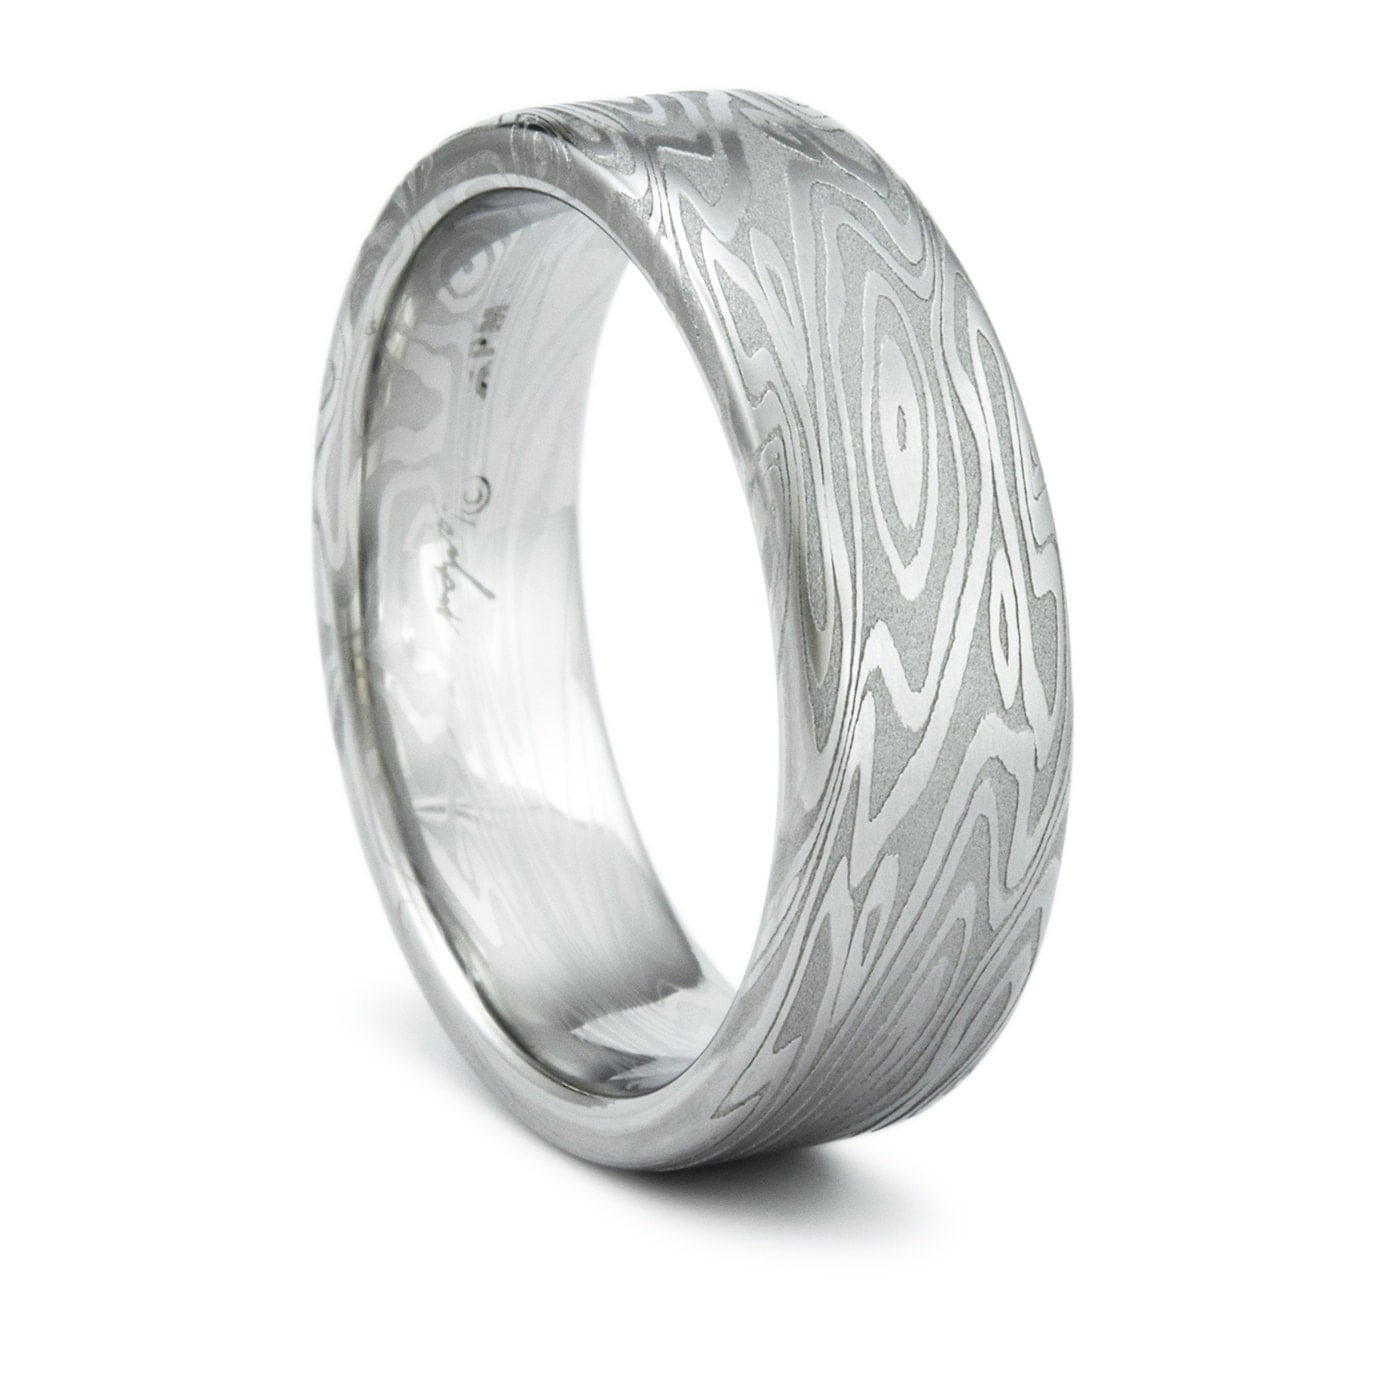 Damascus Ring Unique Men s Wedding Band Twisted Wood Grain